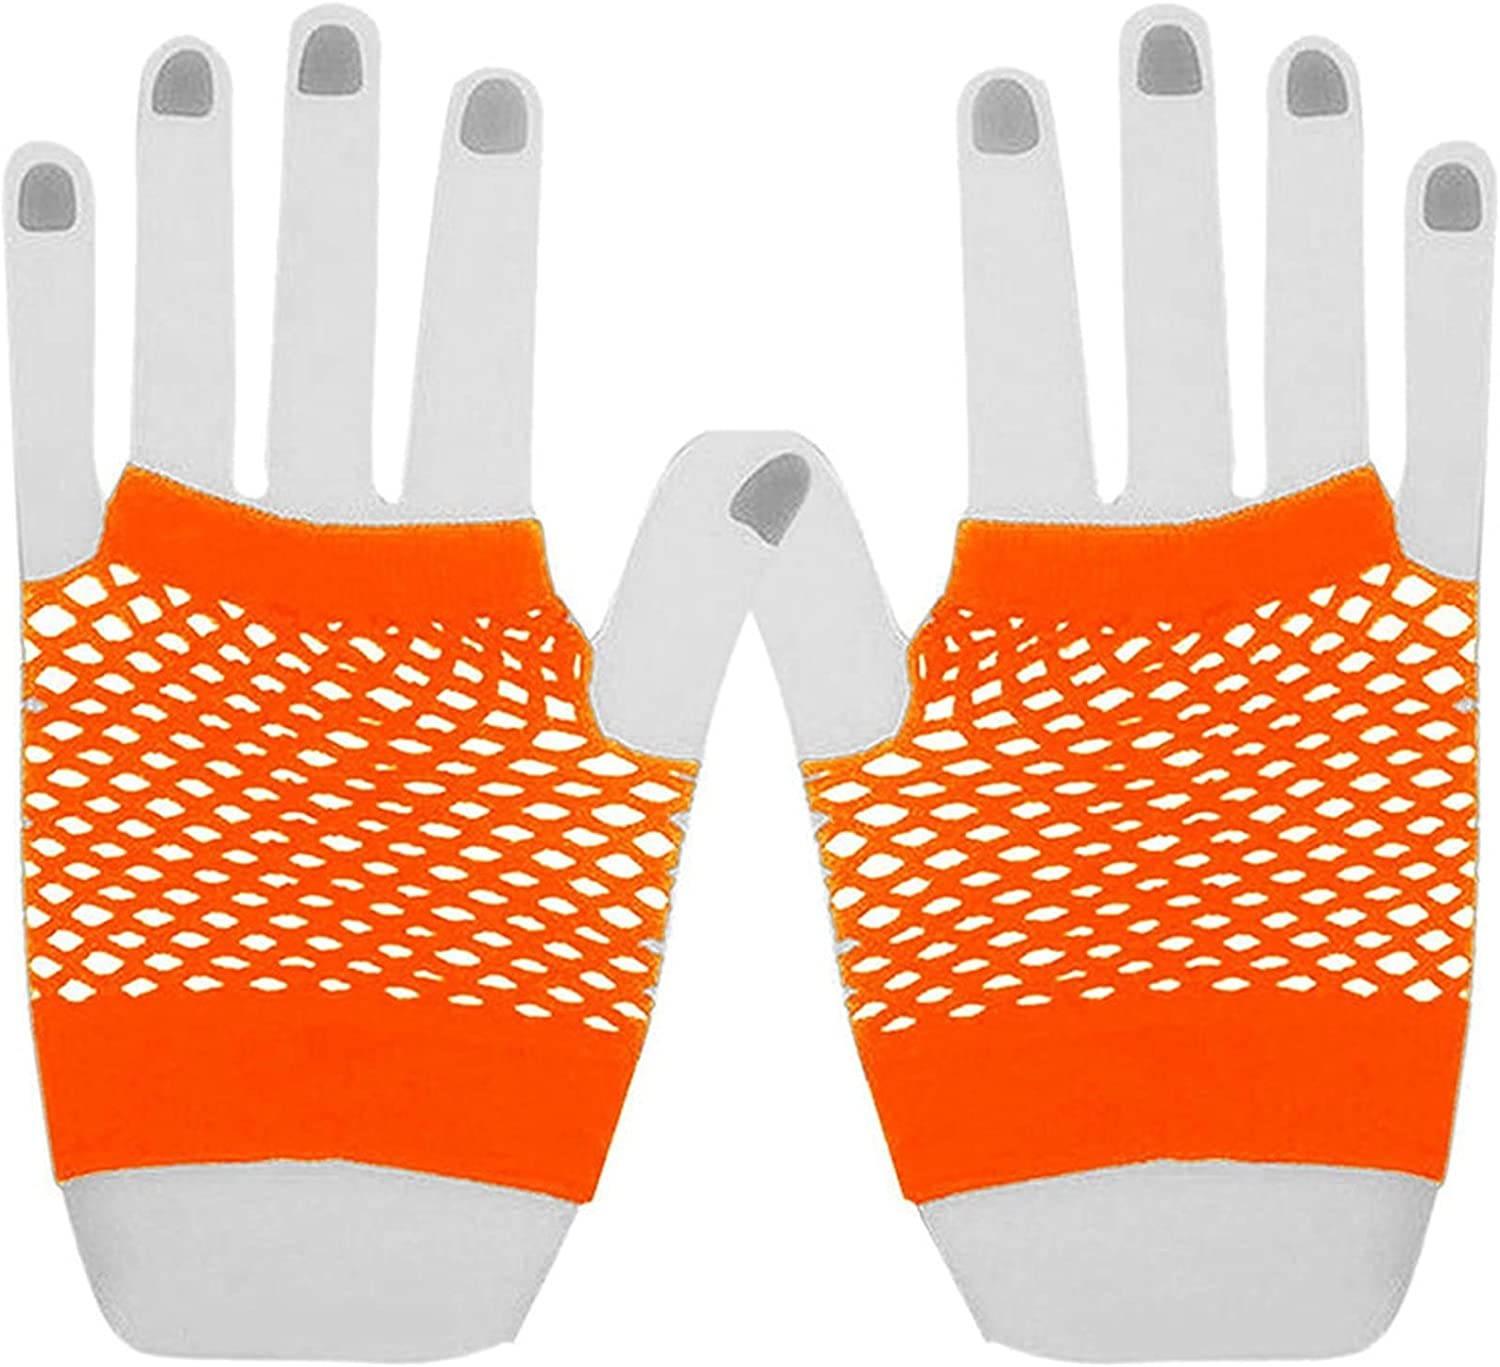 lkpoijuh Candy Colors Net Gloves Without Fingers Max 51% OFF Boston Mall Fingerless Lace